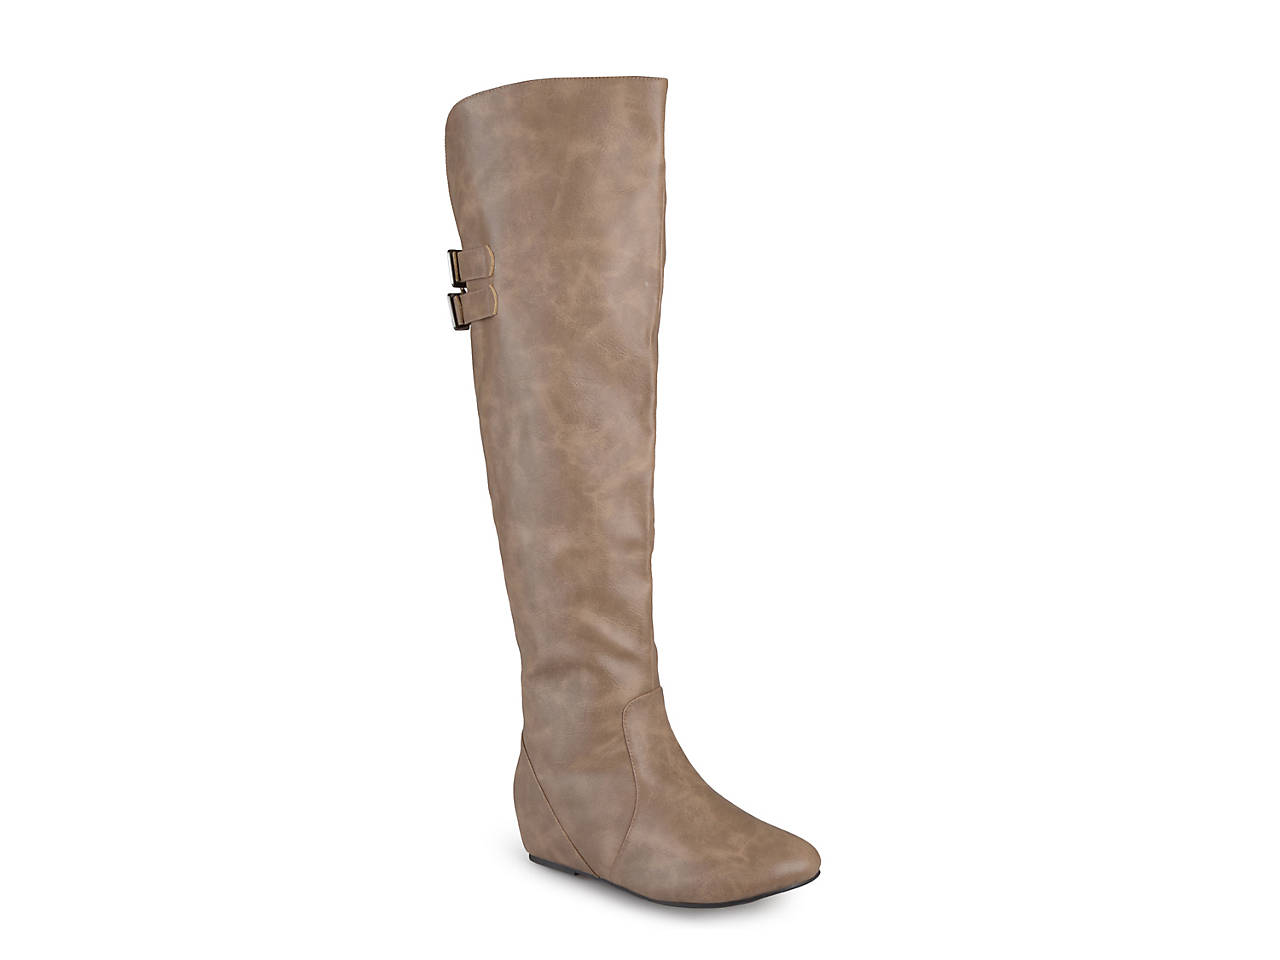 Journee Collection Angel ... Women's Over-the-Knee Wedge Riding Boots FeOrHXx